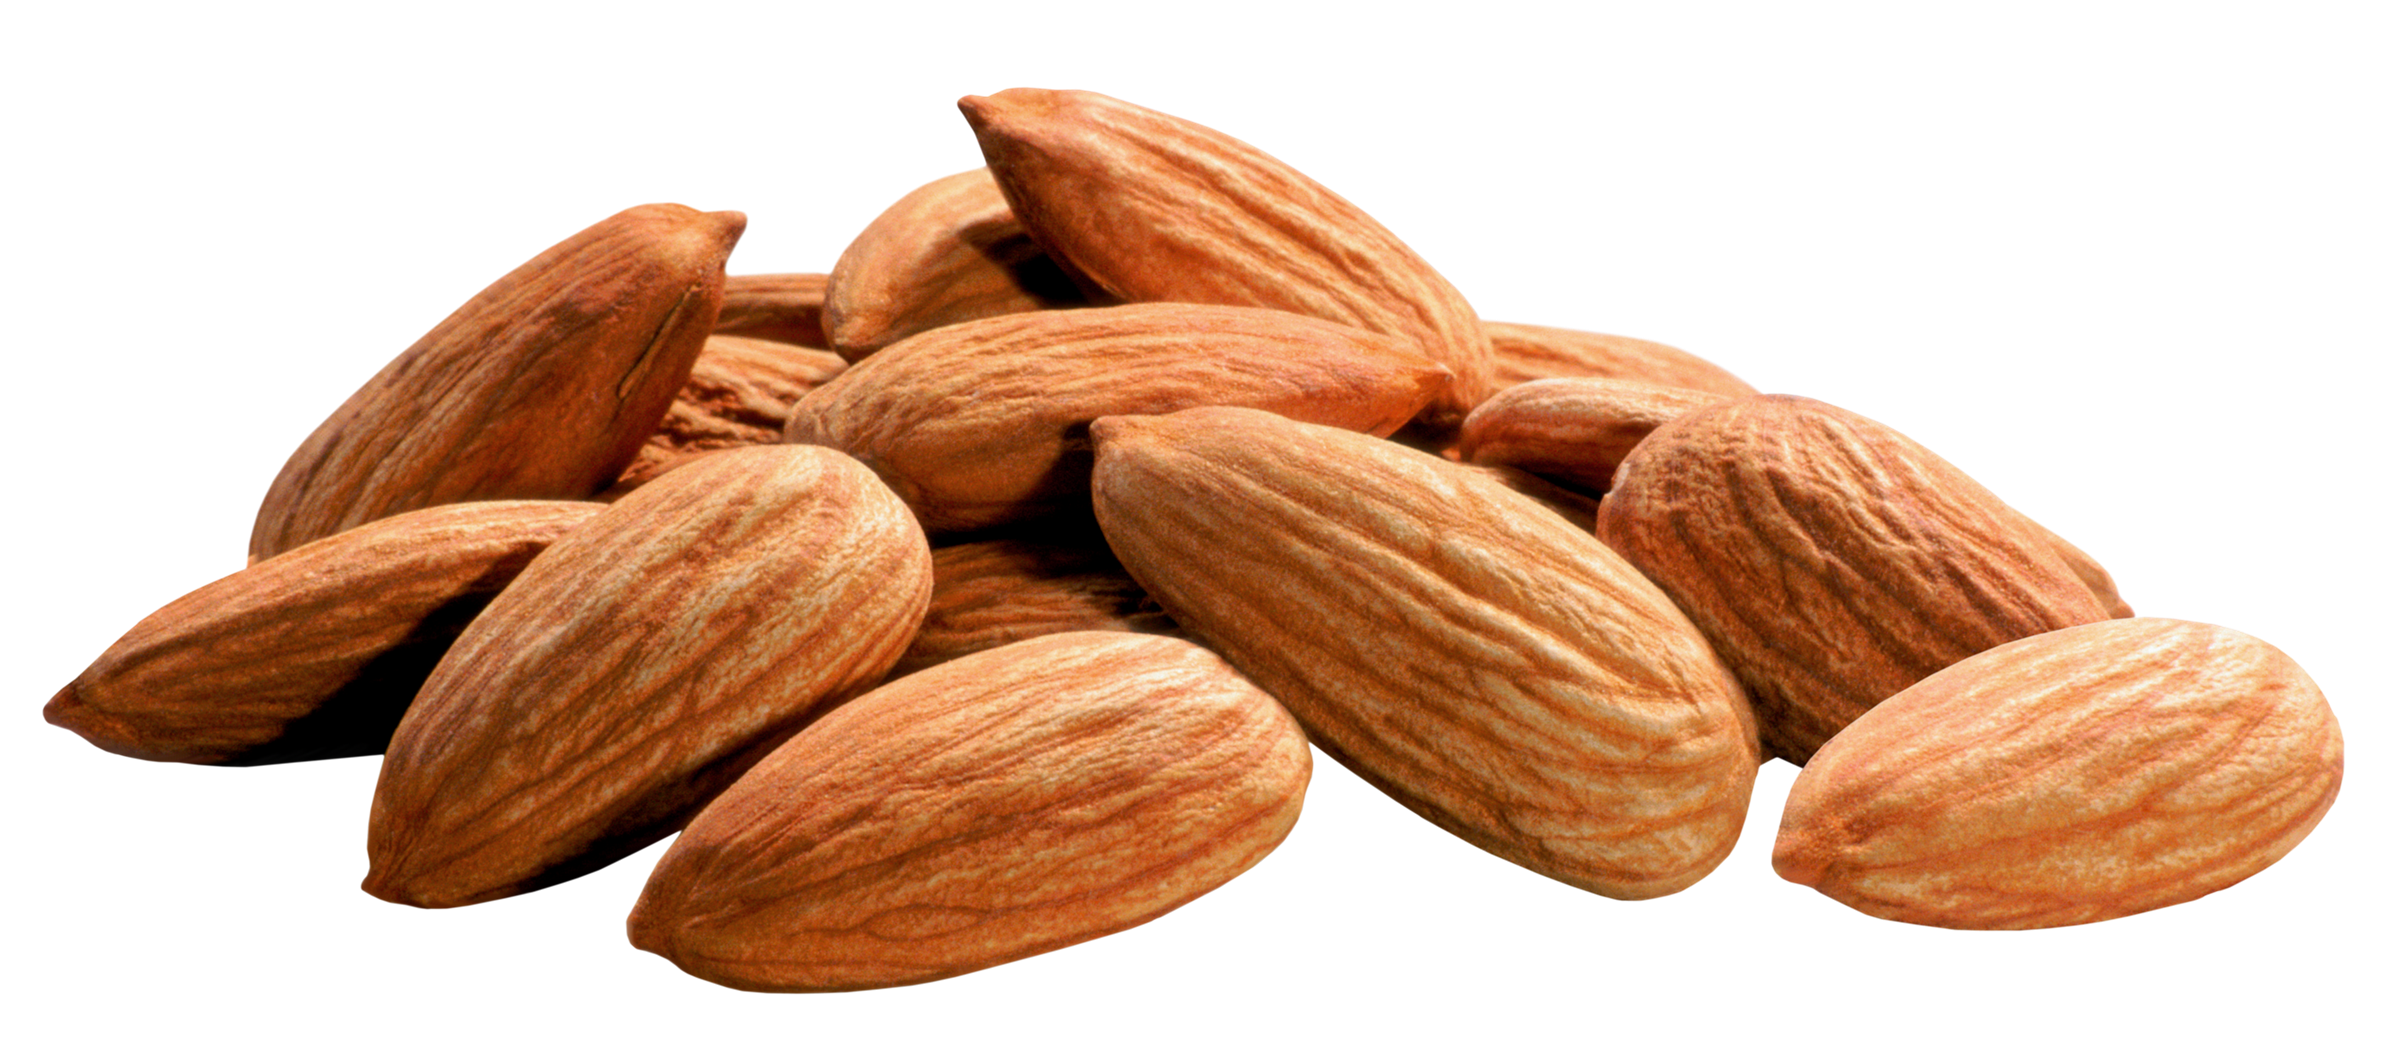 Almond Png - Almond PNG Image